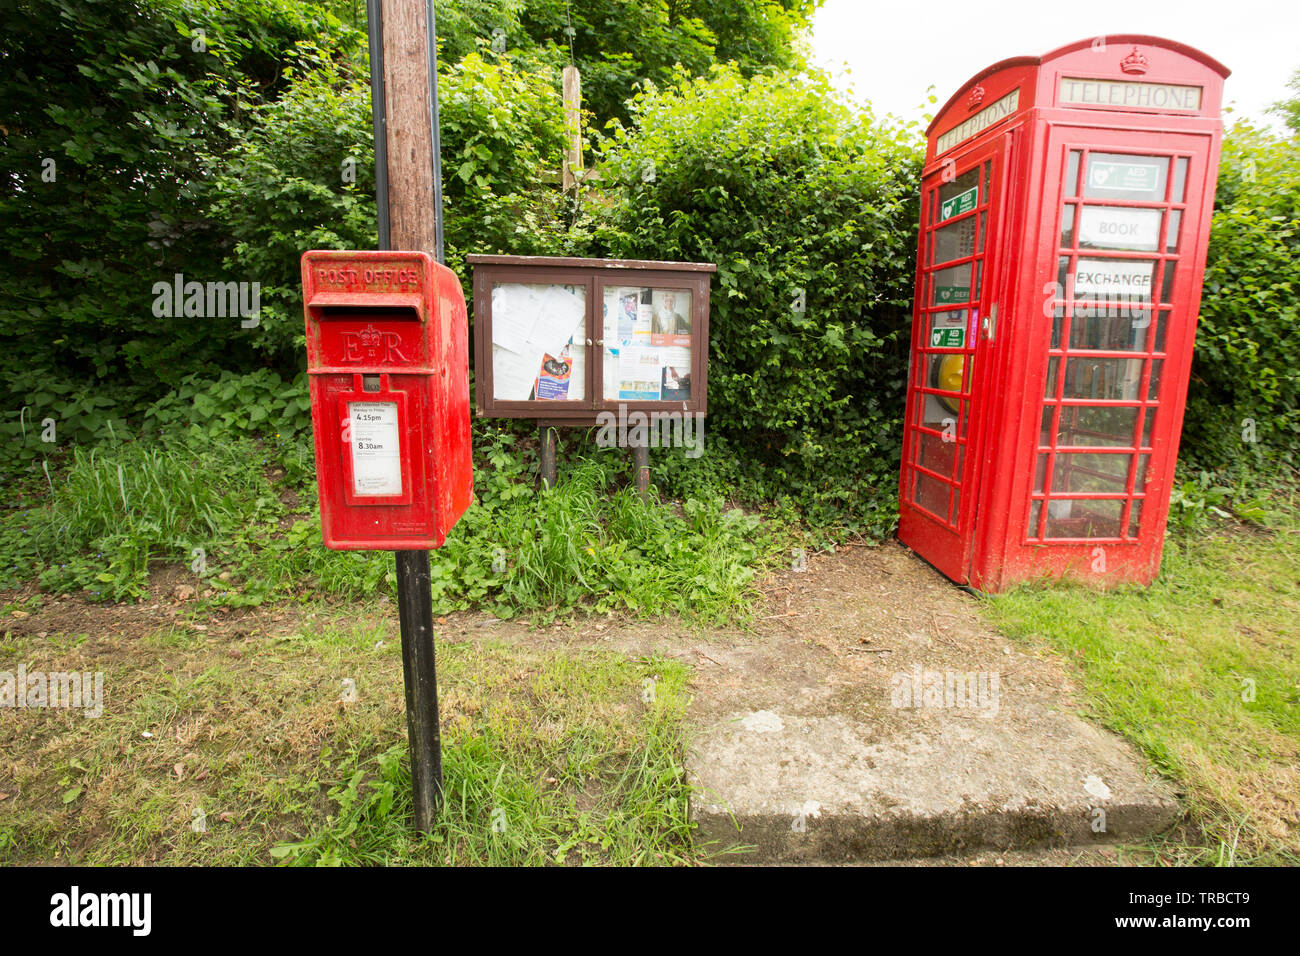 A red telephone box in rural Dorset that has been used as a book exchange. The phone box also houses a defibrillator and is next to a village notice b - Stock Image